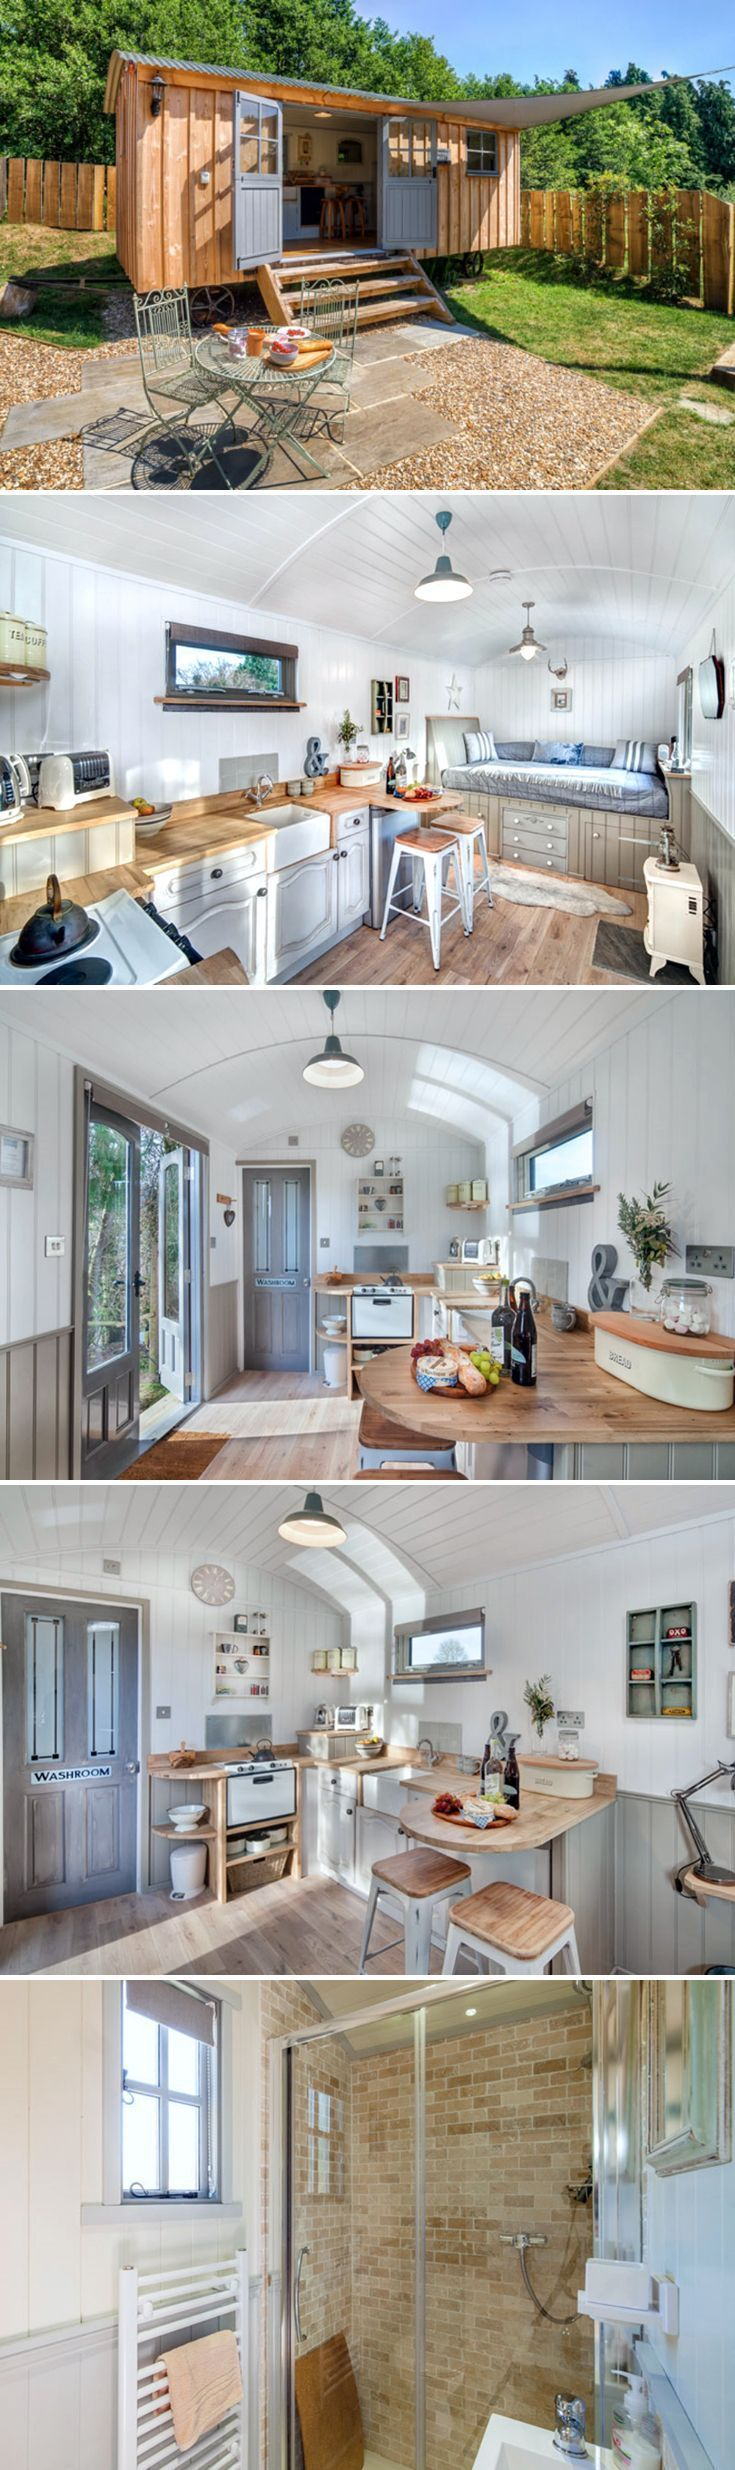 Photo of Bayview di Cali Cottages – Tiny Living